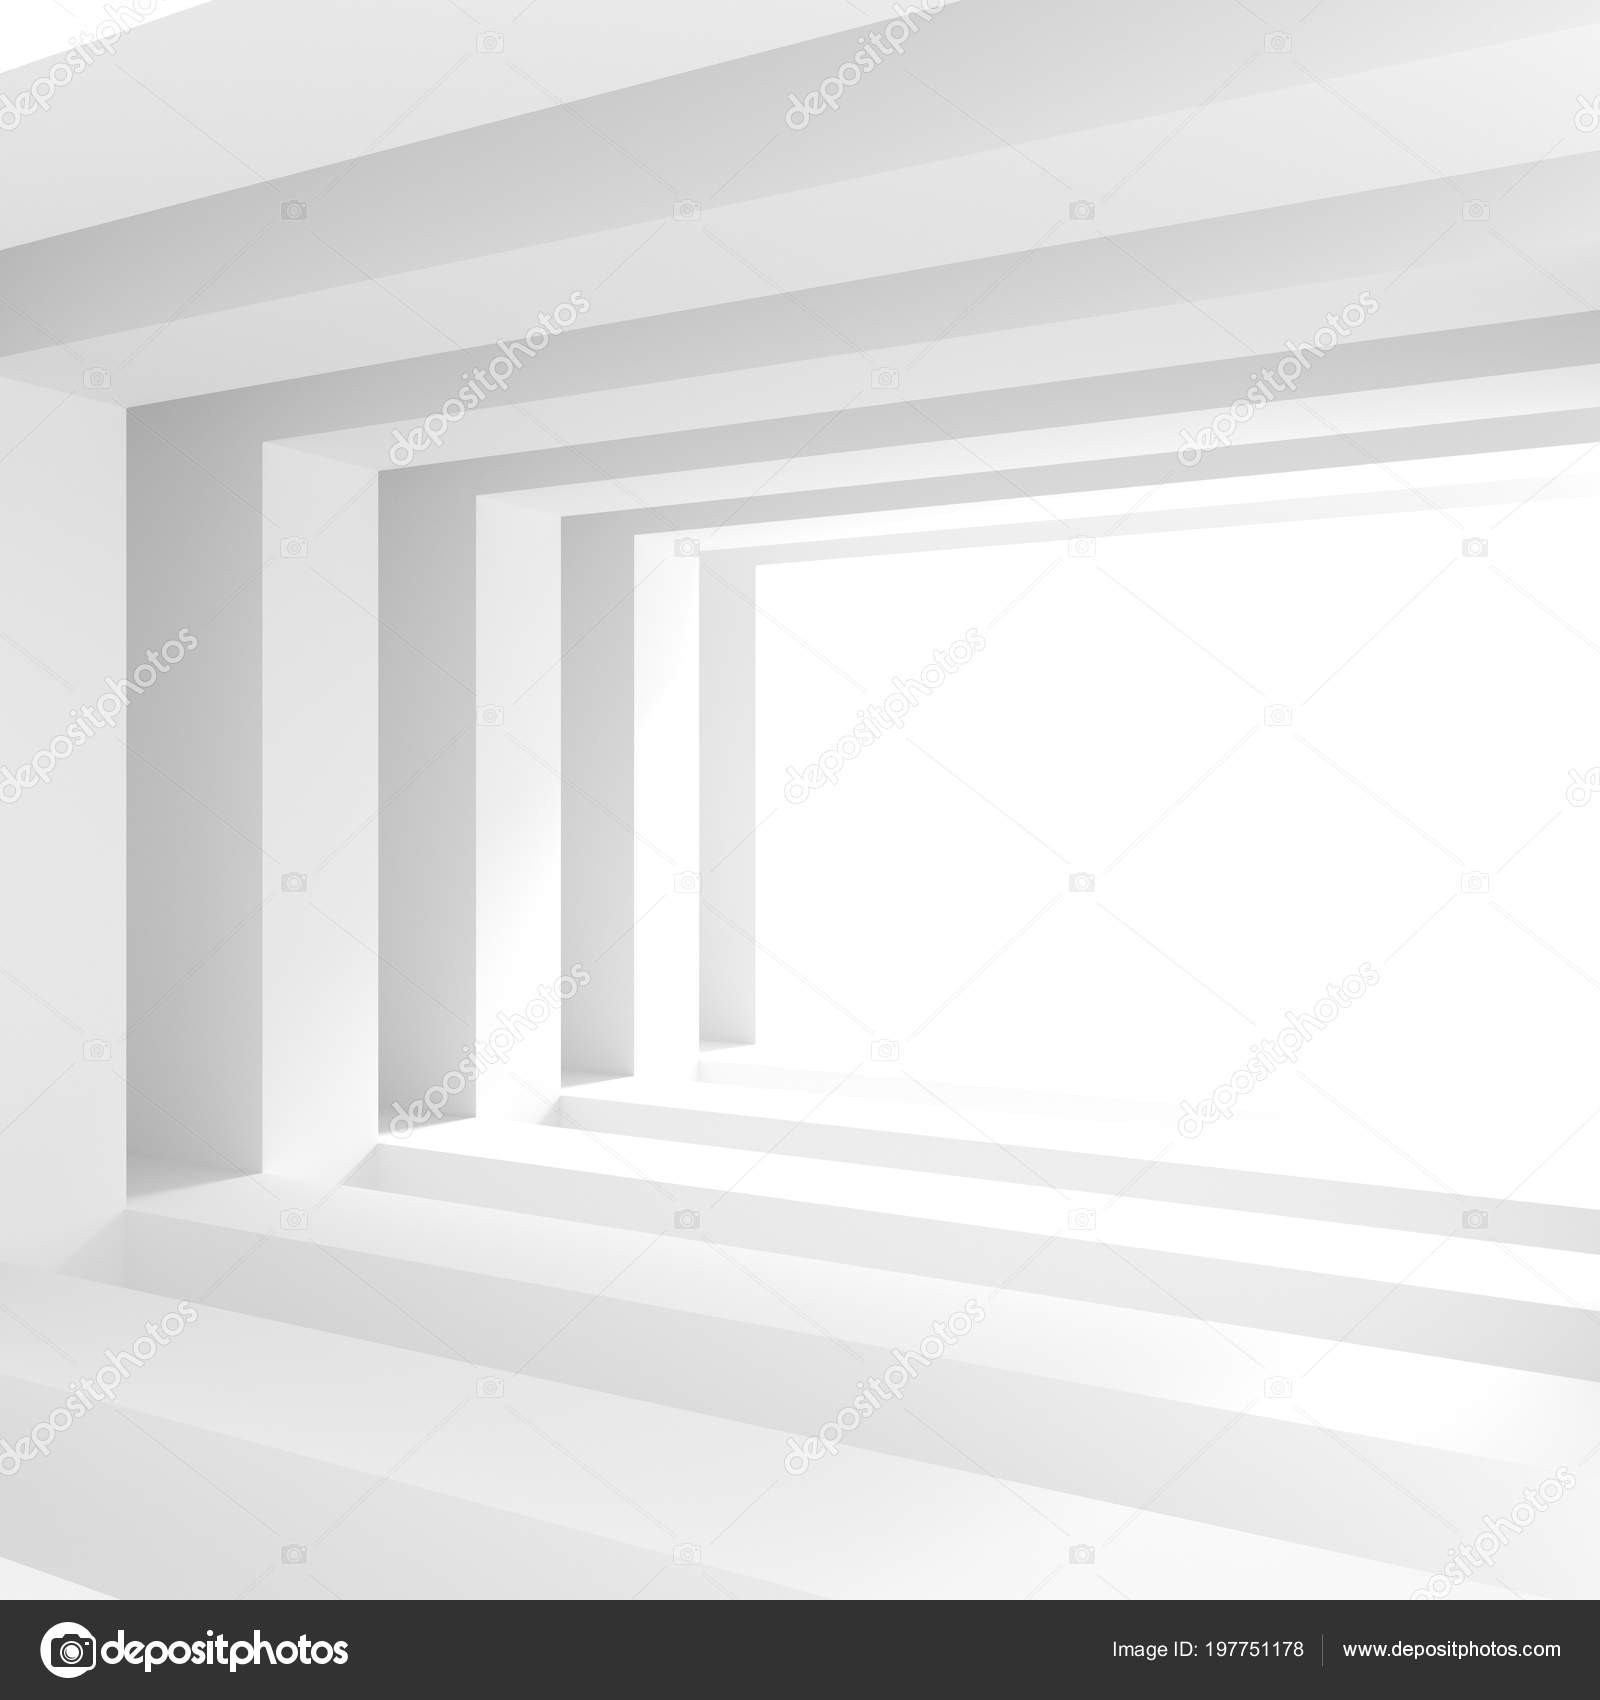 Abstract Interior Background White Room Window Modern Architecture Wallpaper Rendering